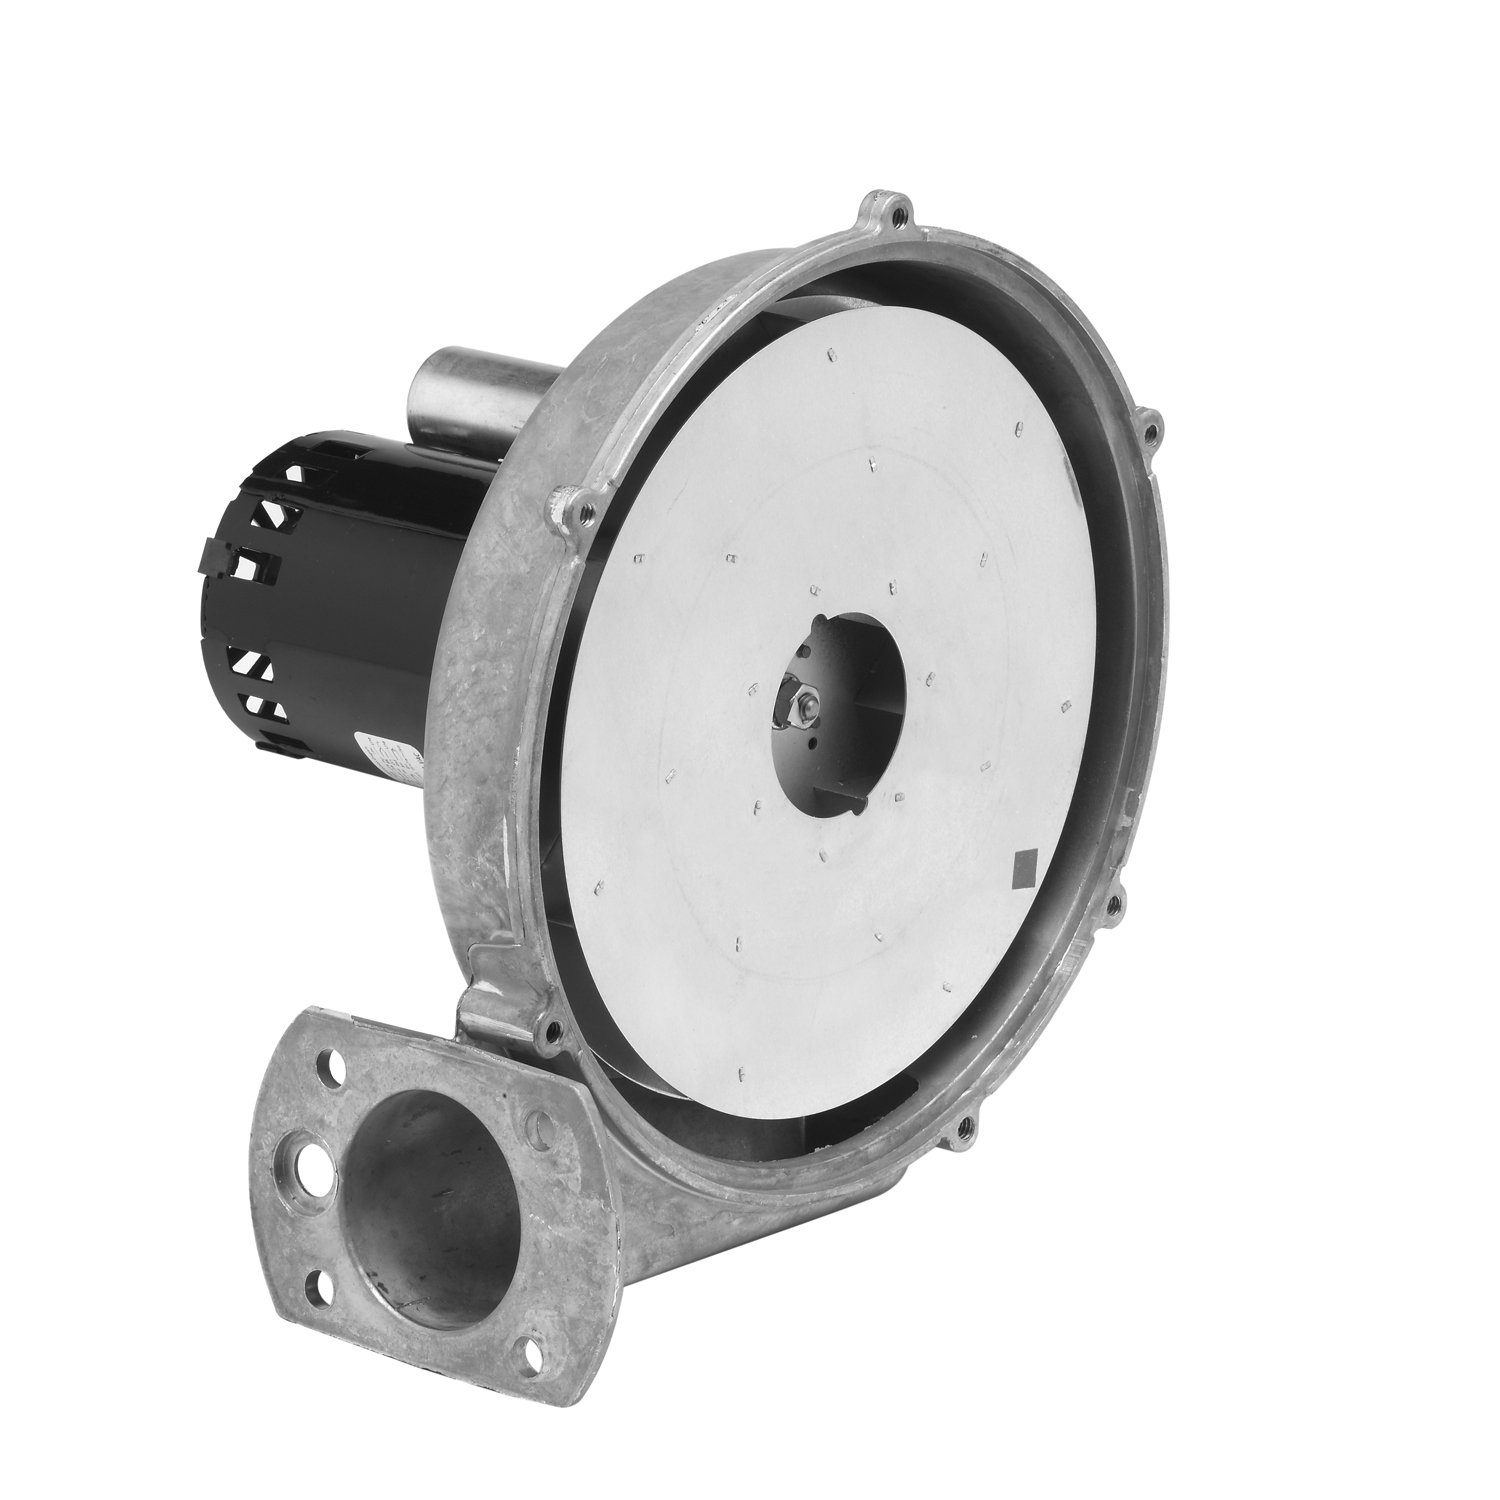 Fasco A274 3.3'' Frame Permanent Split Capacitor OEM Replacement Specific Purpose Blower with Ball Bearing, 1/24HP, 3500rpm, 208-230V, 60Hz, 0.28 amps